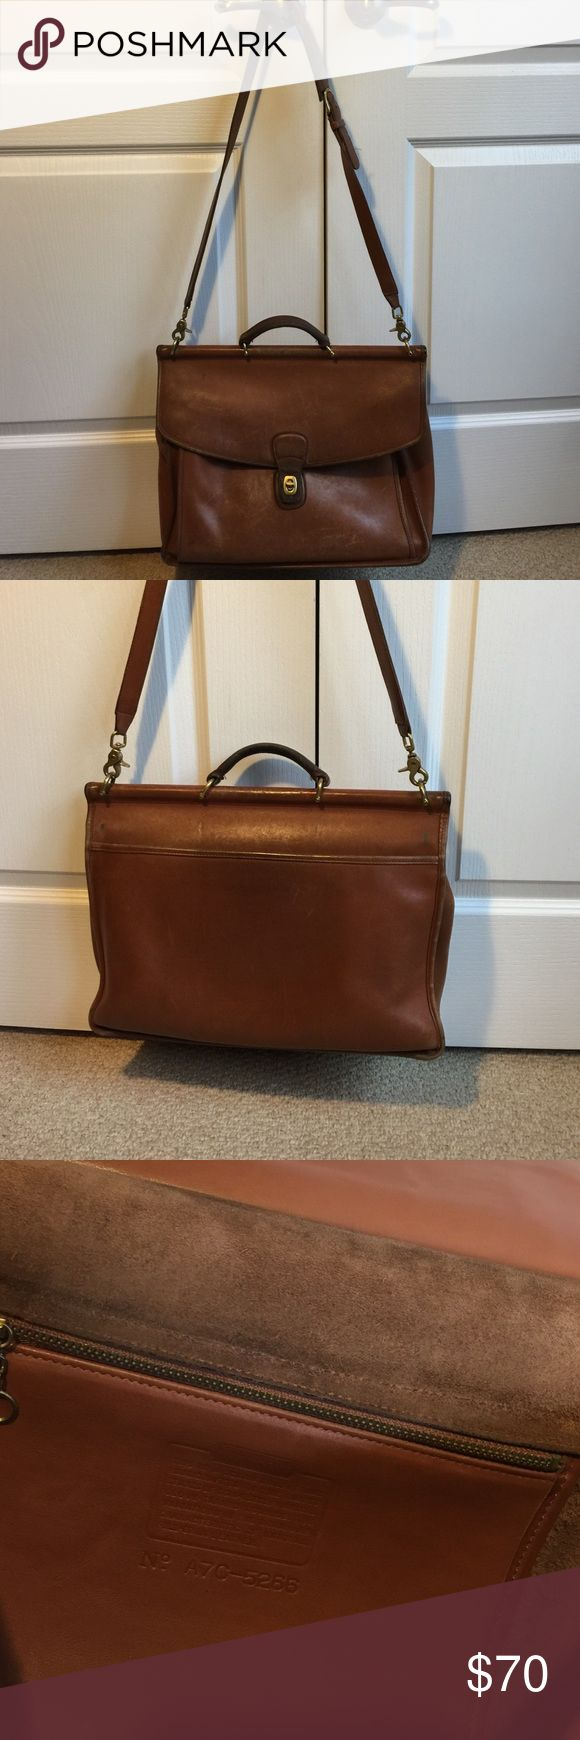 Coach Vintage briefcase As is Coach briefcase worn used and many more miles to go with this classic 1970s #A7C-5266. Needs TLC from scuffs and dirt. Coach Bags